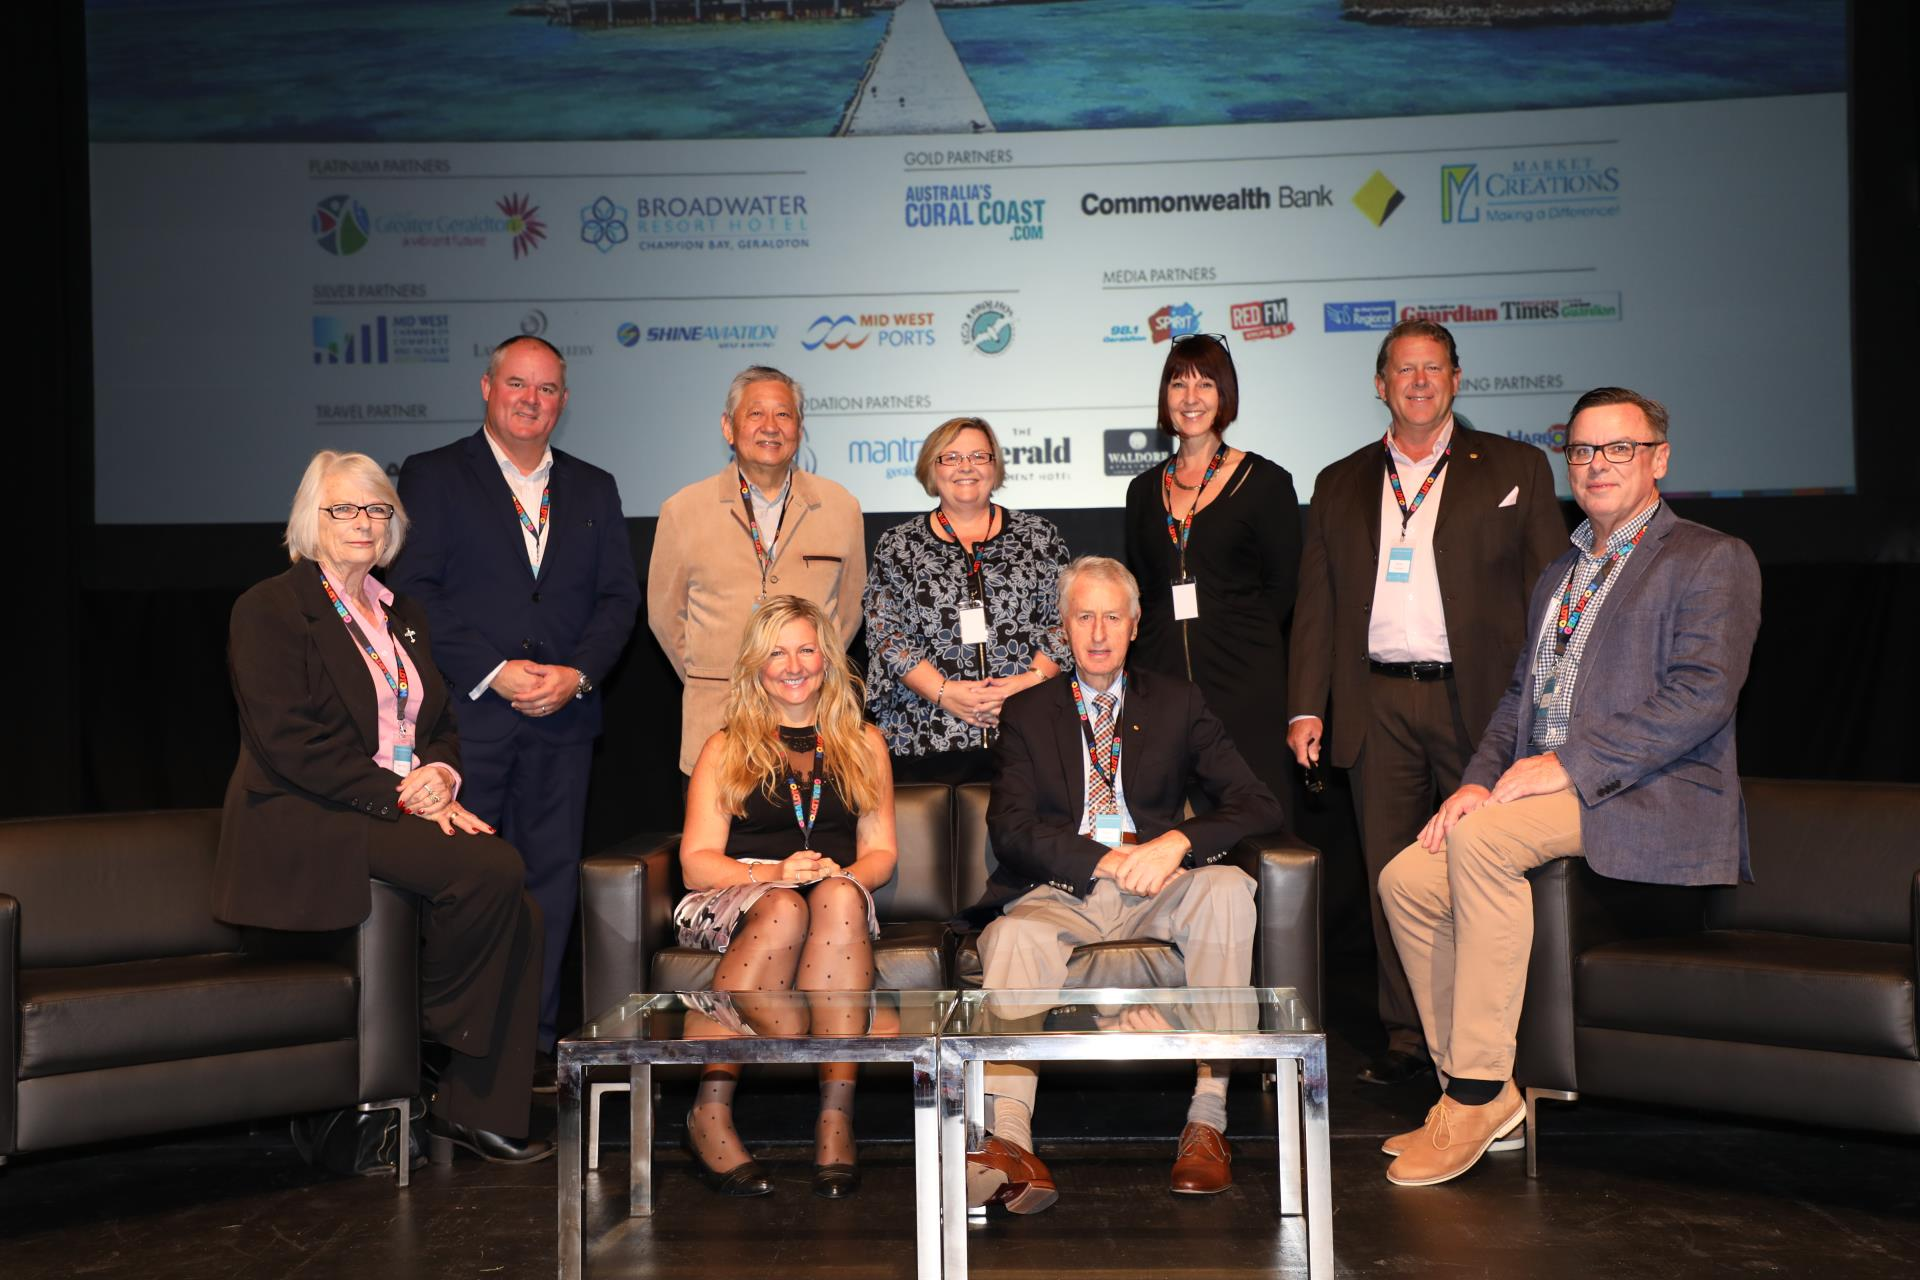 Key tourism industry experts on stage at the Summit